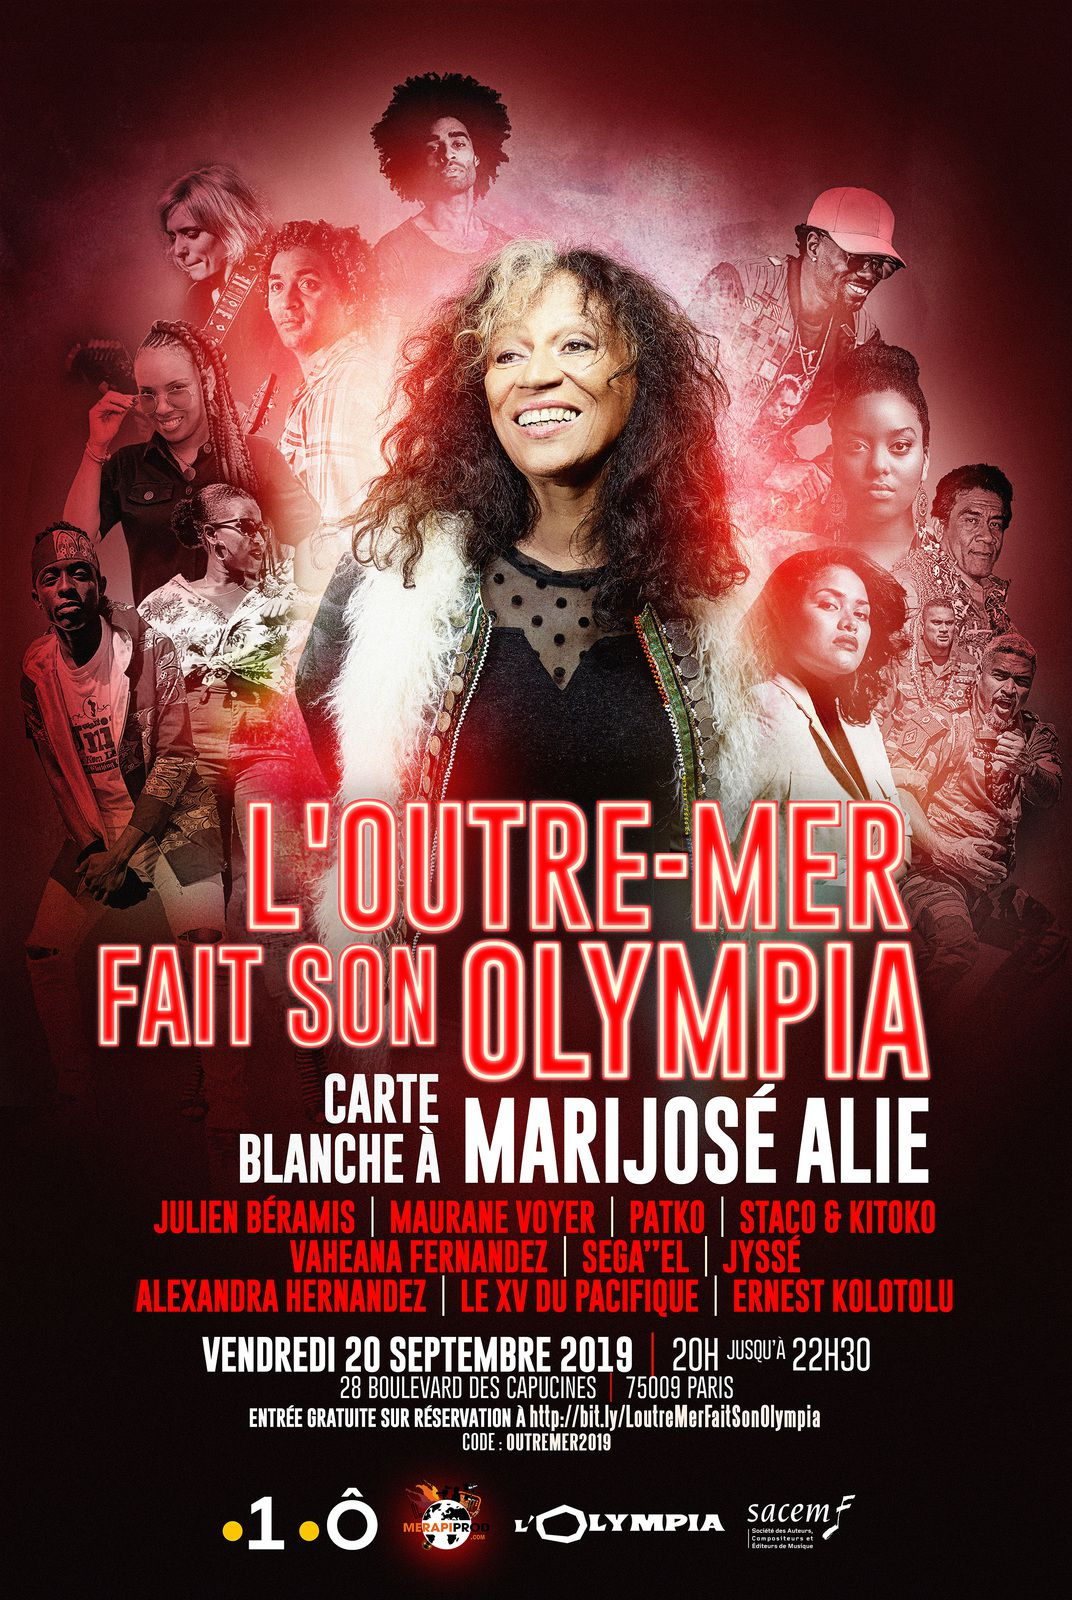 L'outre-mer fait son Olympia - 1ere/France O